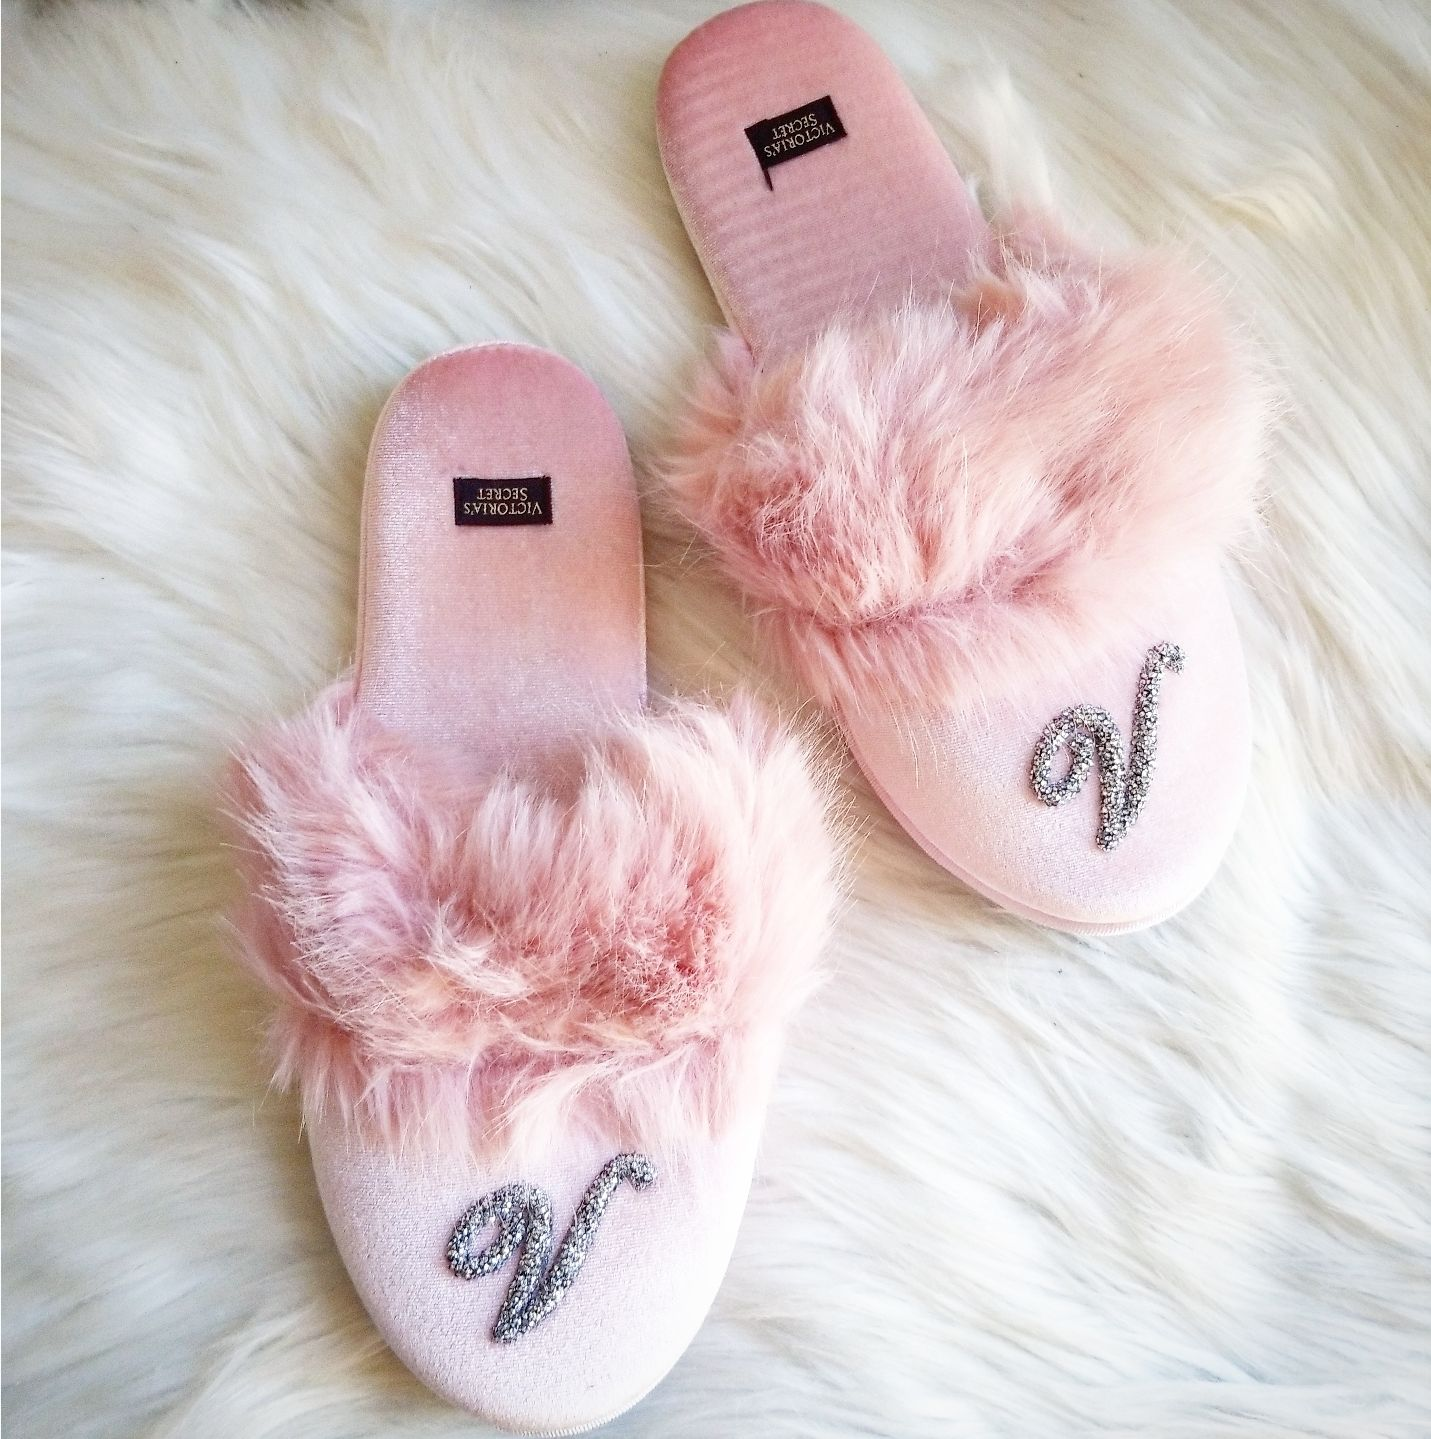 Victoria's Secret Pink Velour Slippers